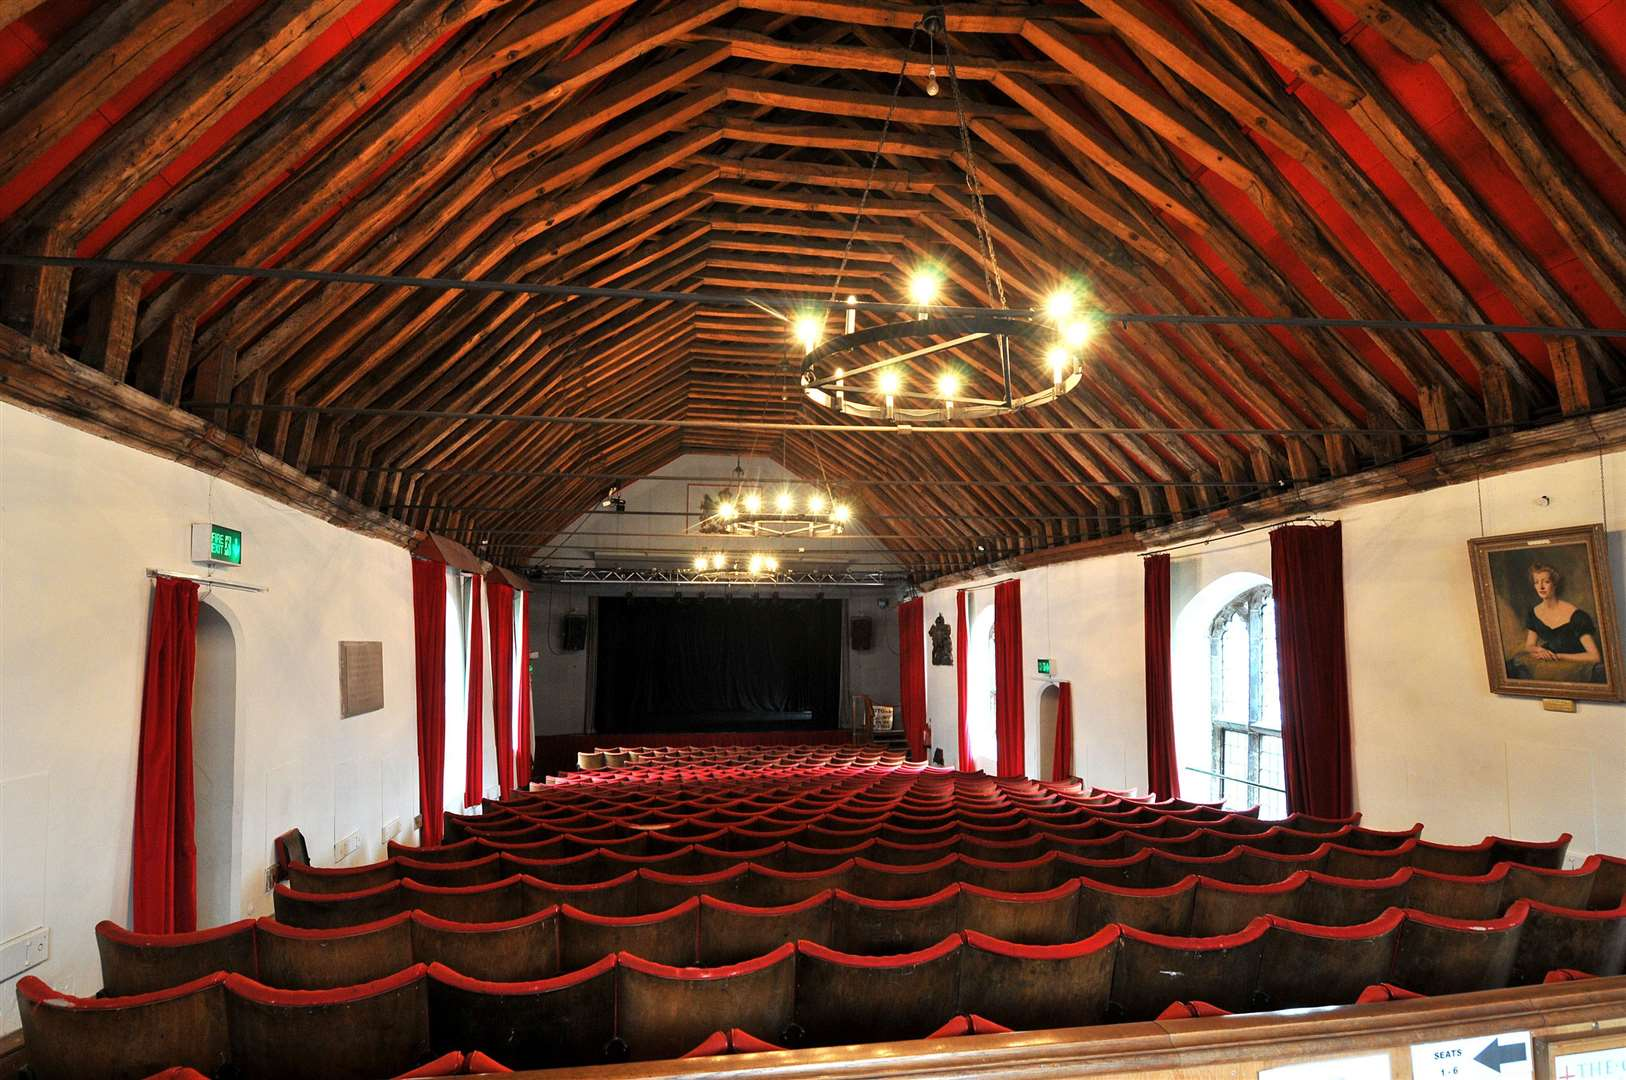 King's Lynn Arts Centre - St George's Guildhall. (3538190)